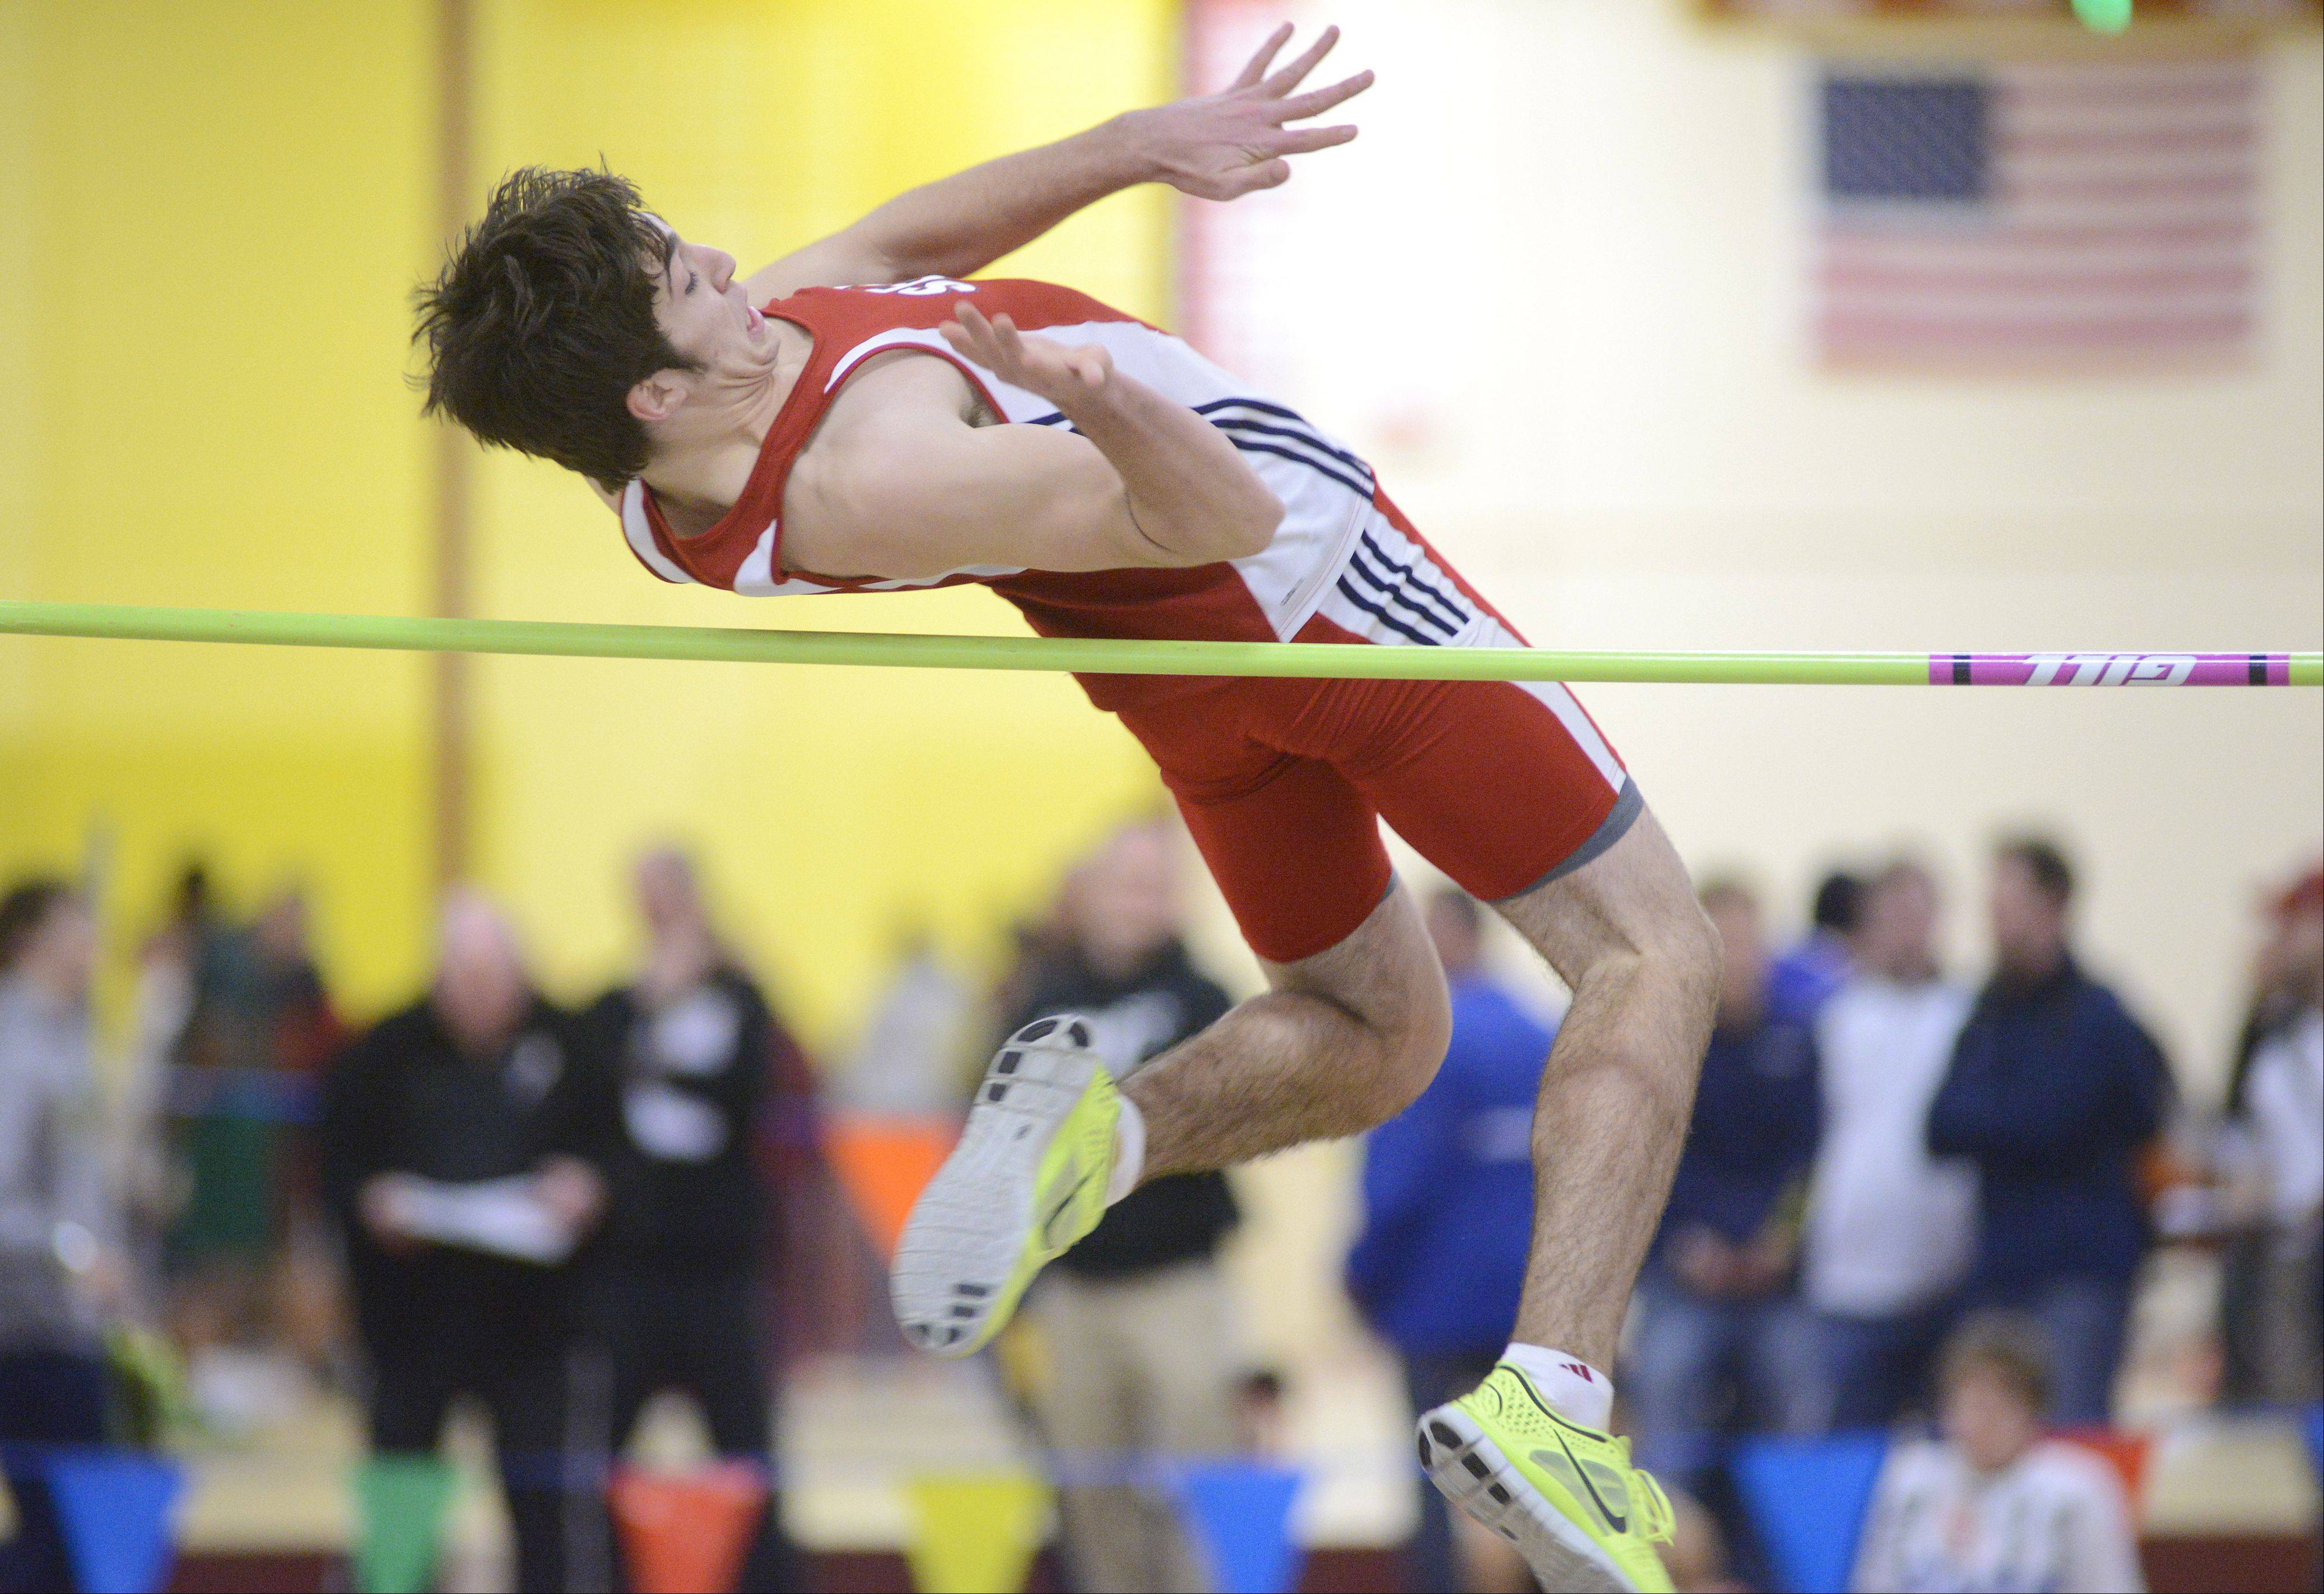 South Elgin's Kyle Kumerow in the high jump at the Upstate Eight Conference in Batavia on Saturday, March 16.